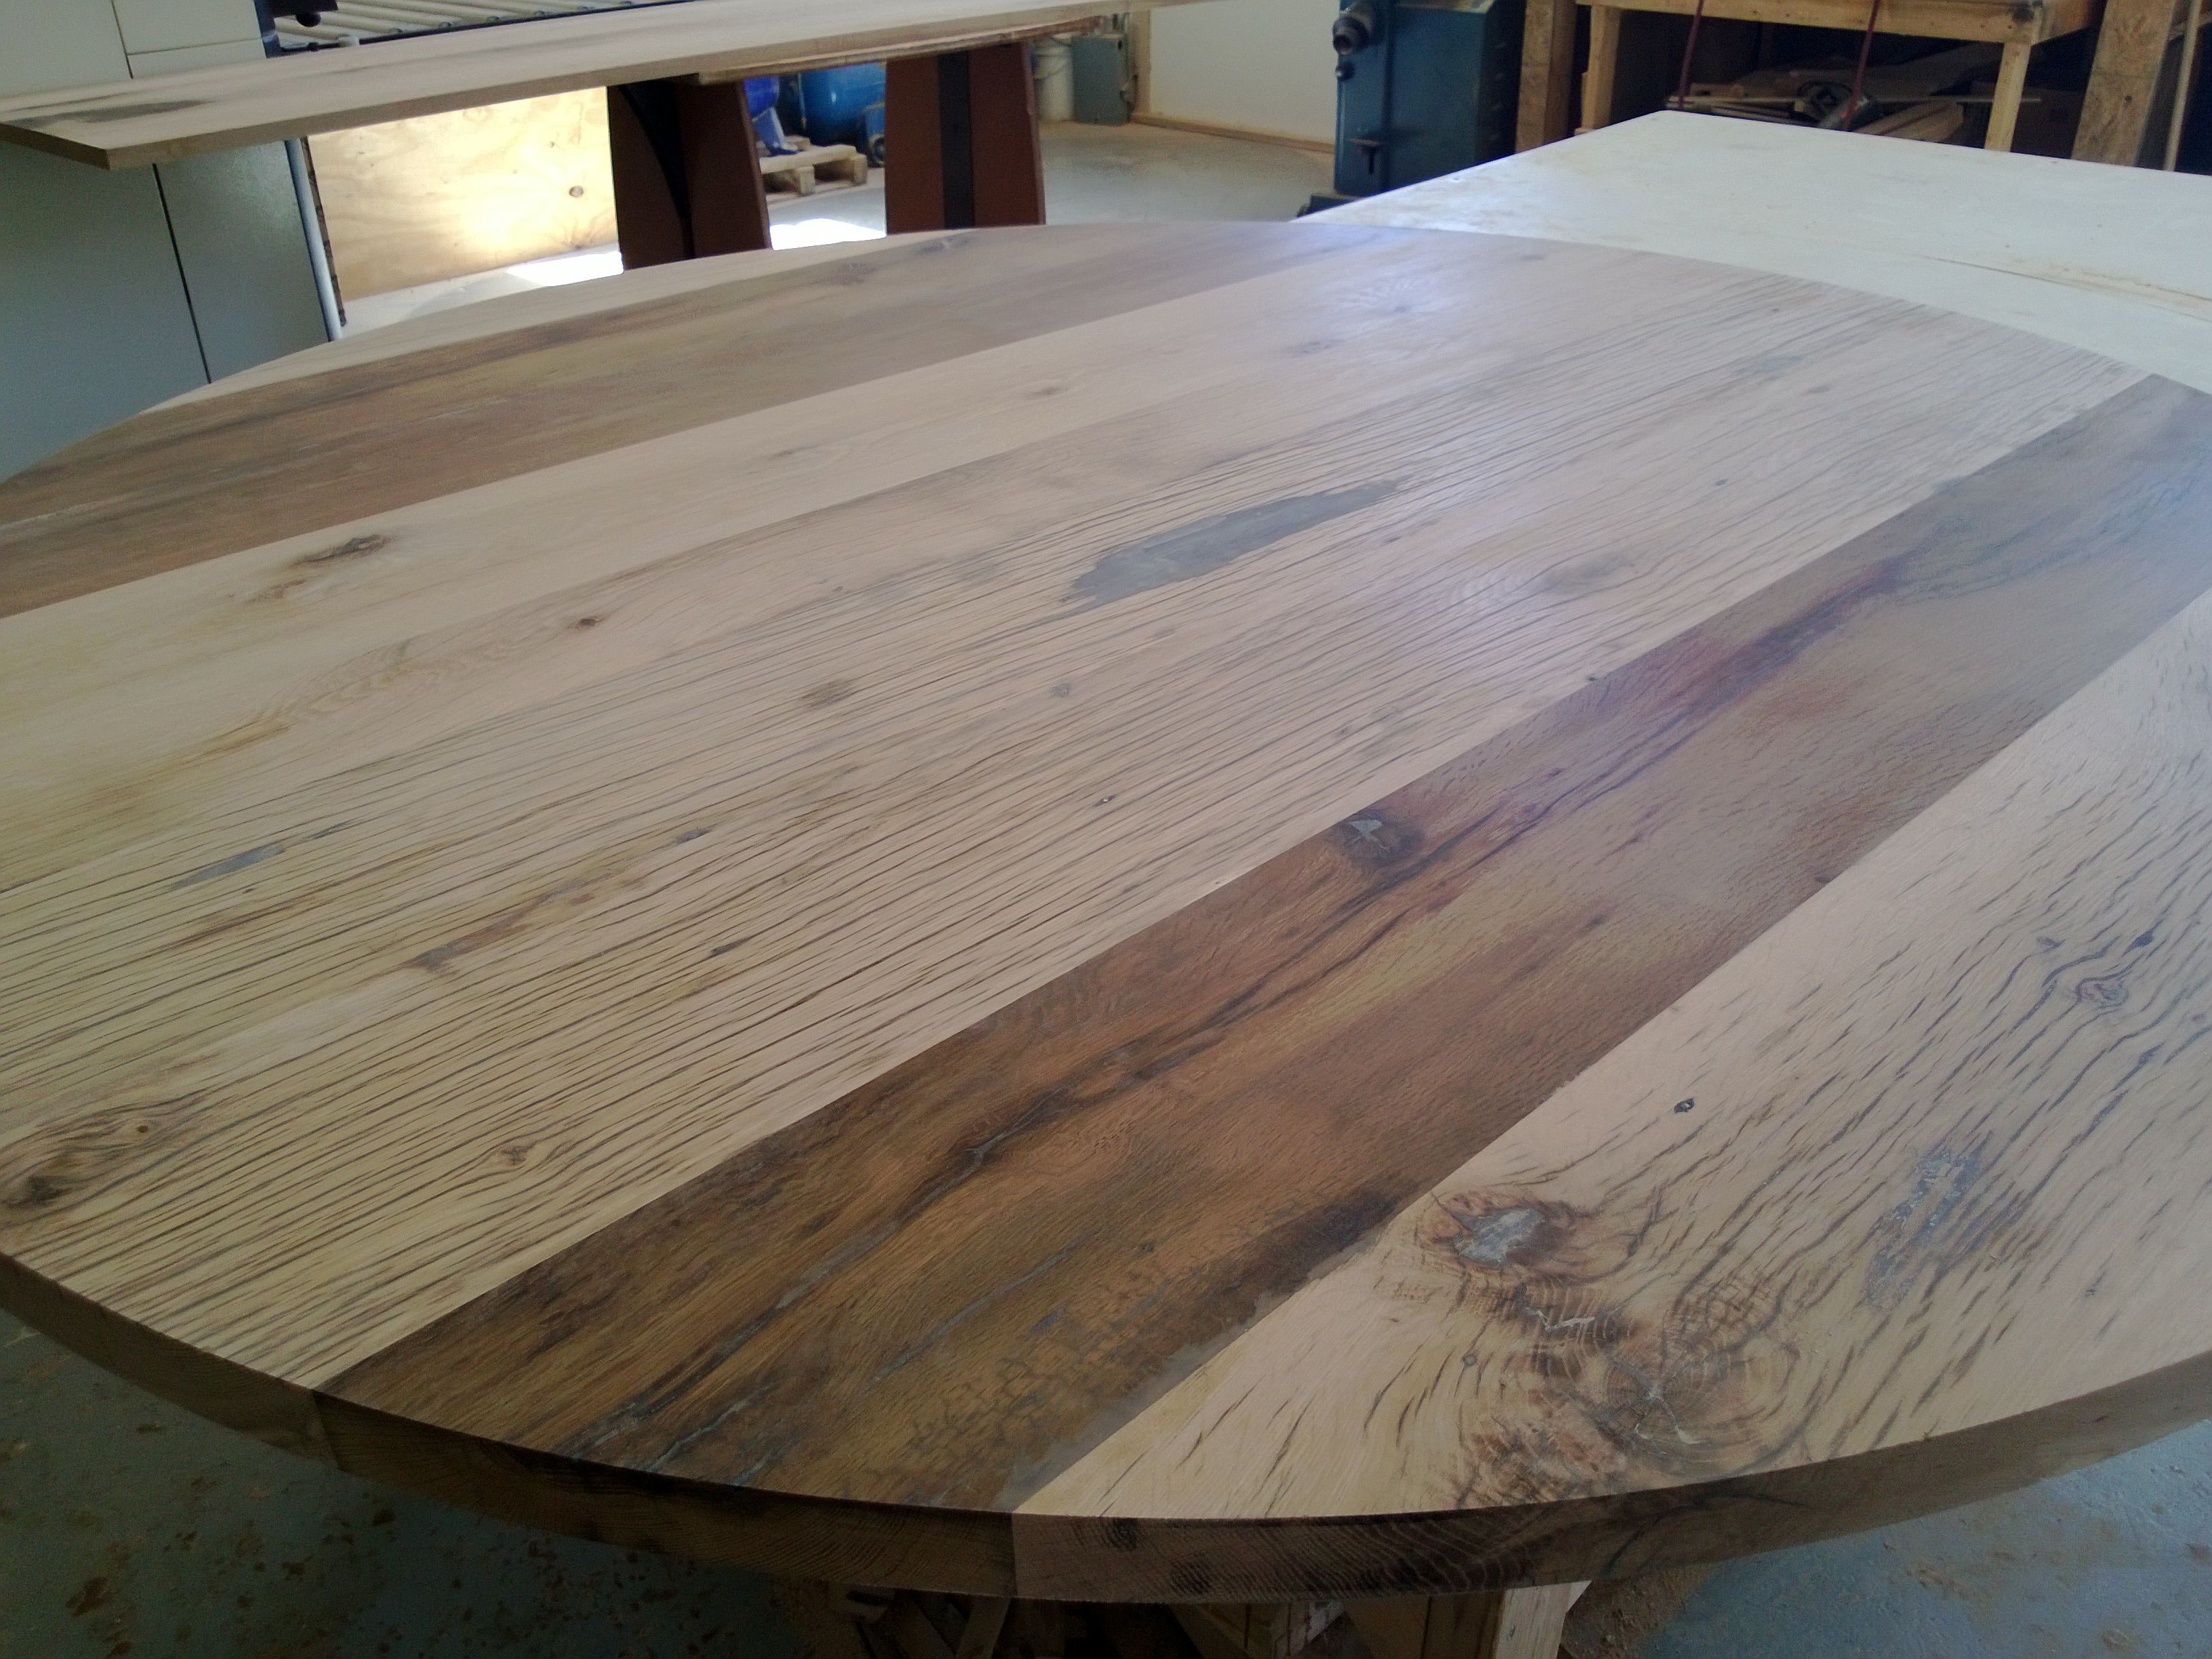 Reclaimed Oak Table Top TruCraft Furniture Pinterest Oak Table Top - Reclaimed oak table top